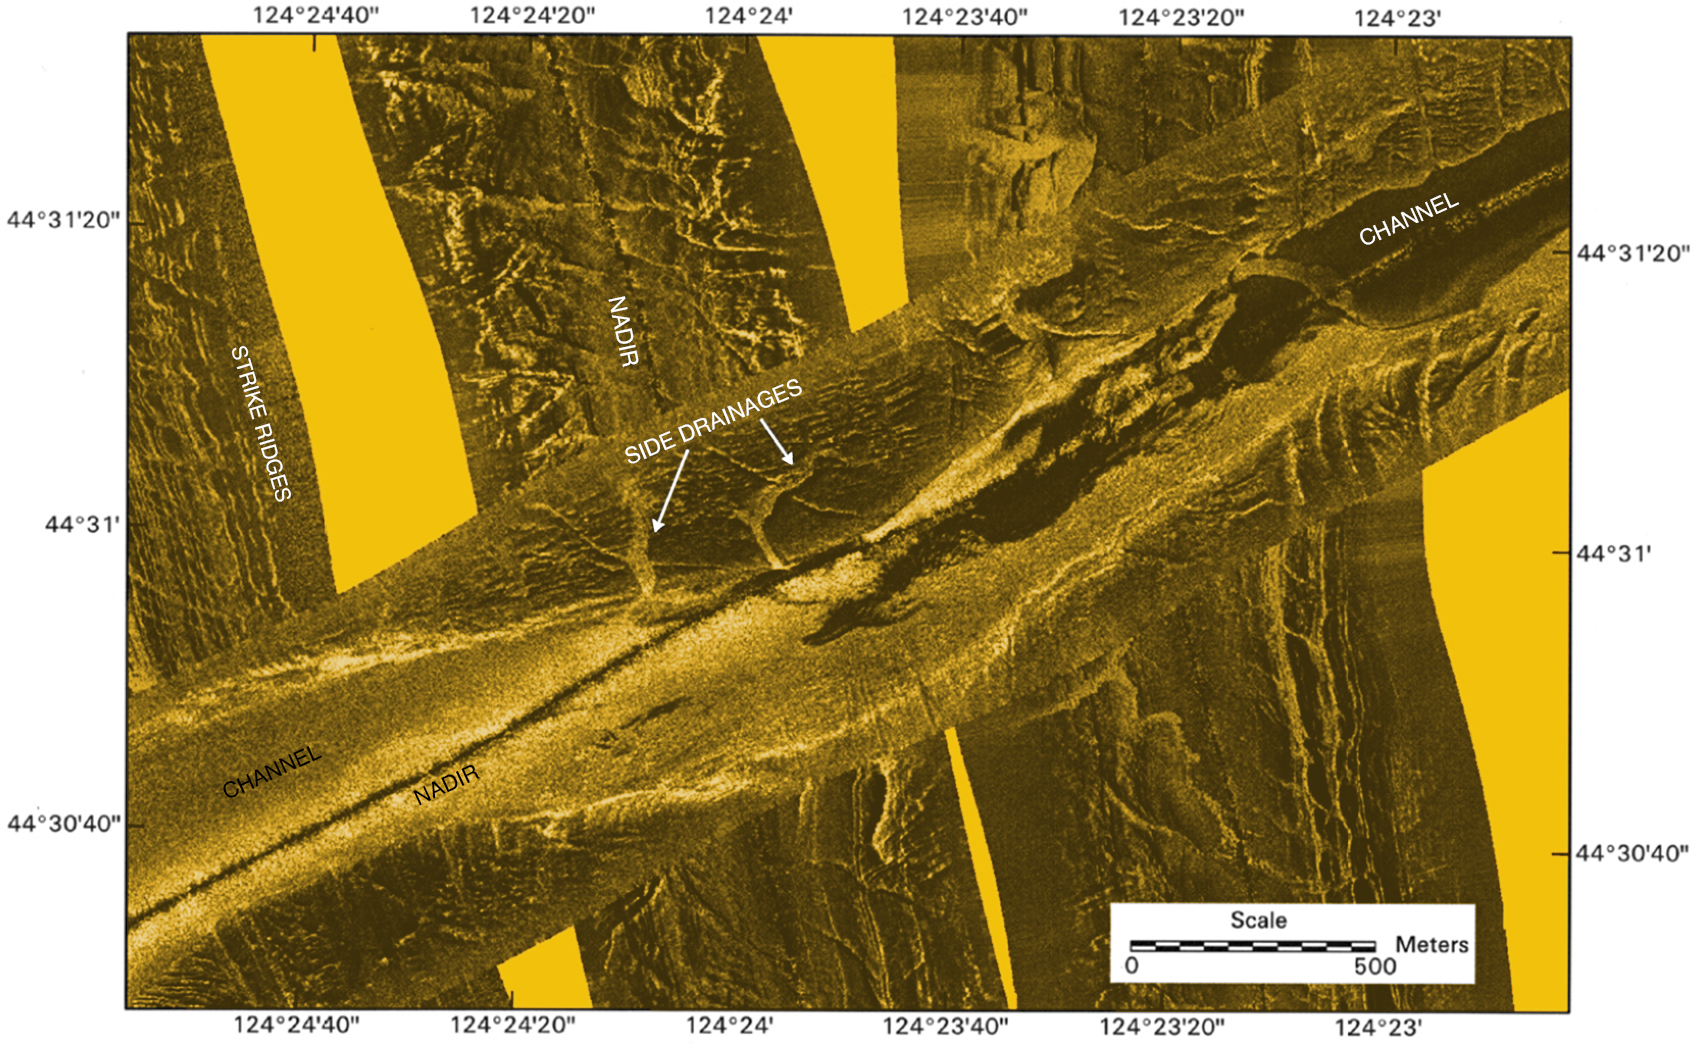 Sidescan sonar image of a river channel crossing Stonewall Bank, southwest of Newport, now covered with two hundred feet of sea water